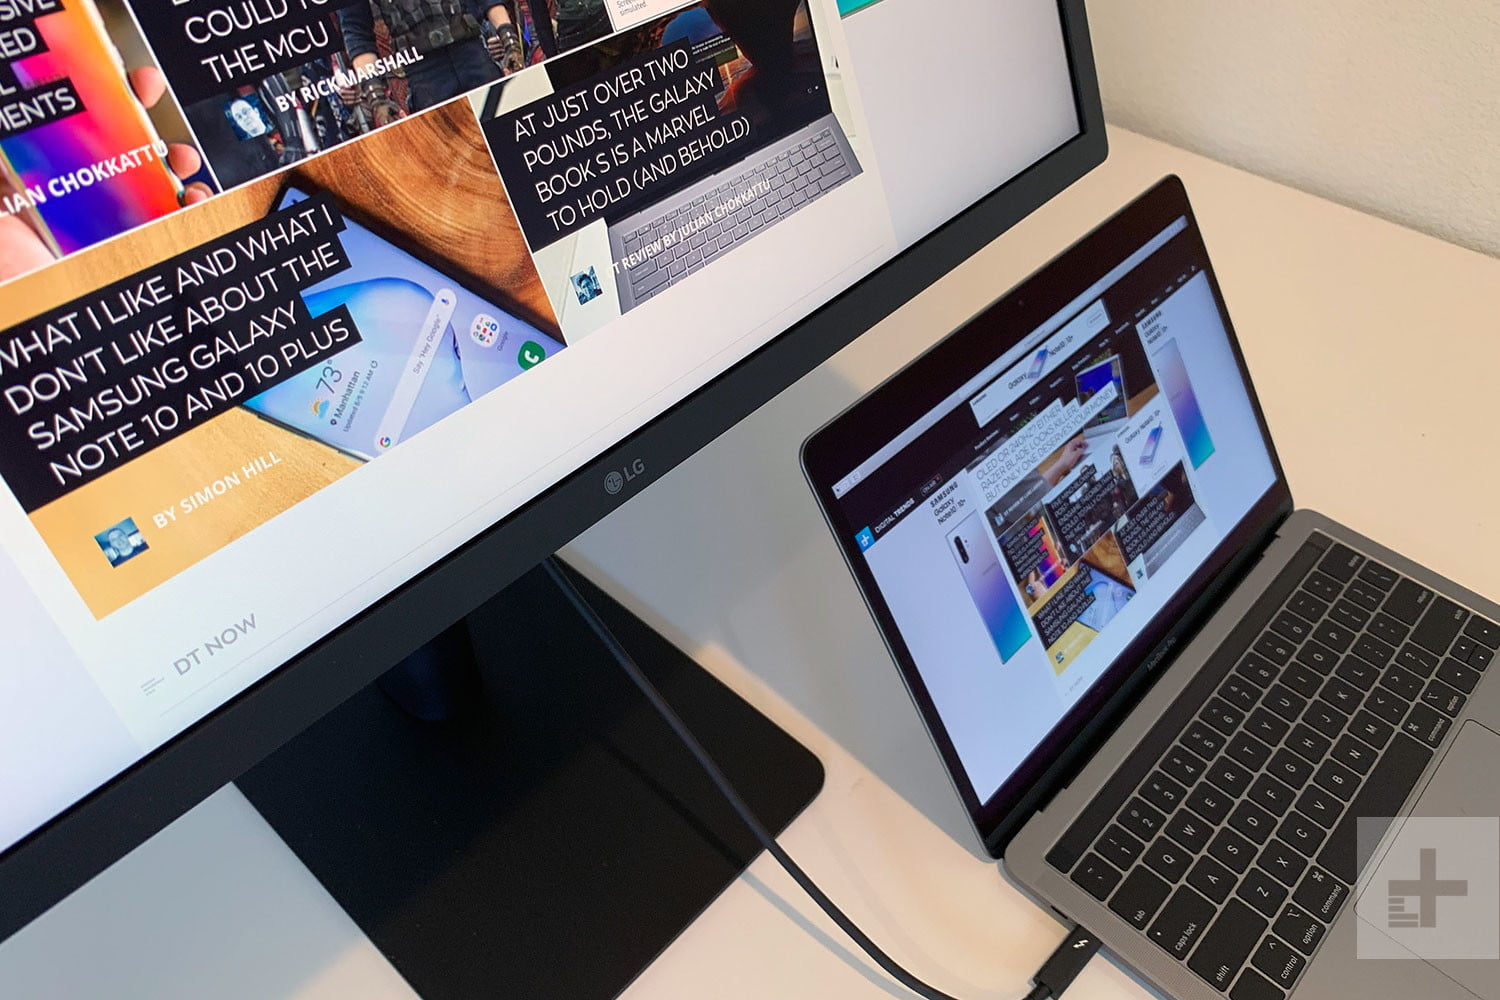 LG's new UltraFine 4K monitor gives your MacBook's Touch Bar a job